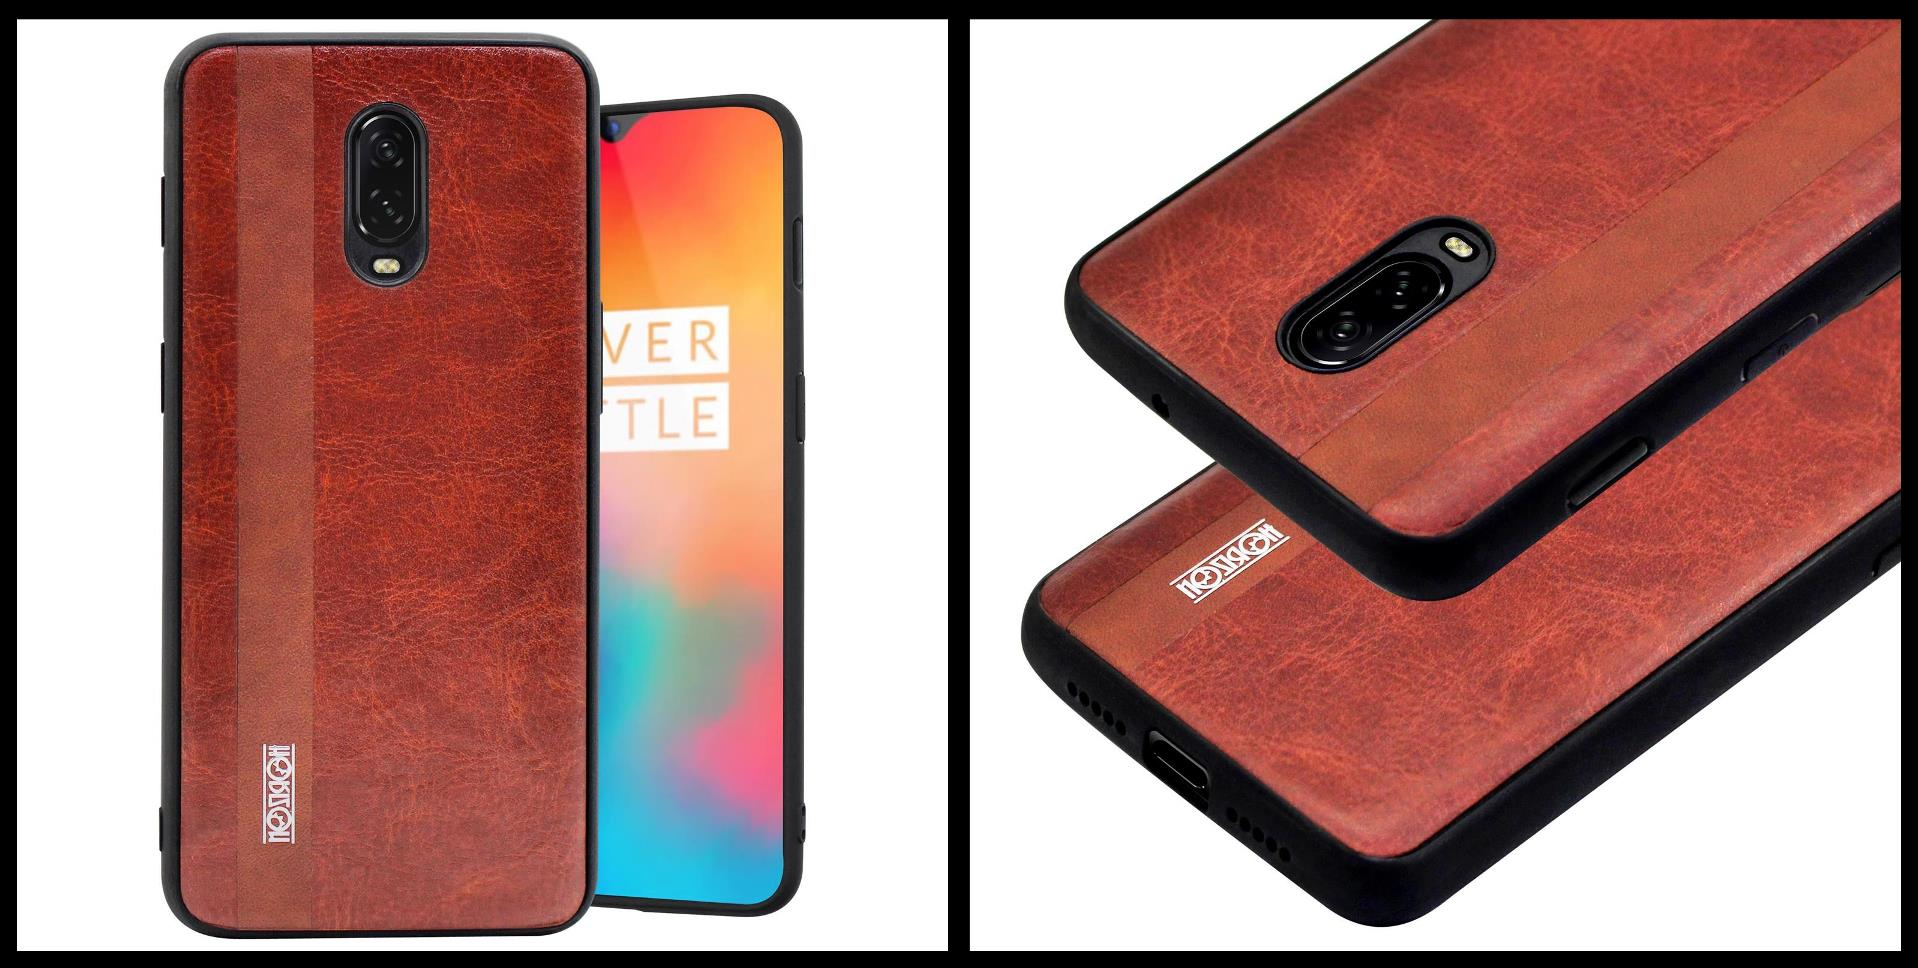 noziroh-leather-oneplus-6t-cover-case-shockproof-slim-design-brown-black